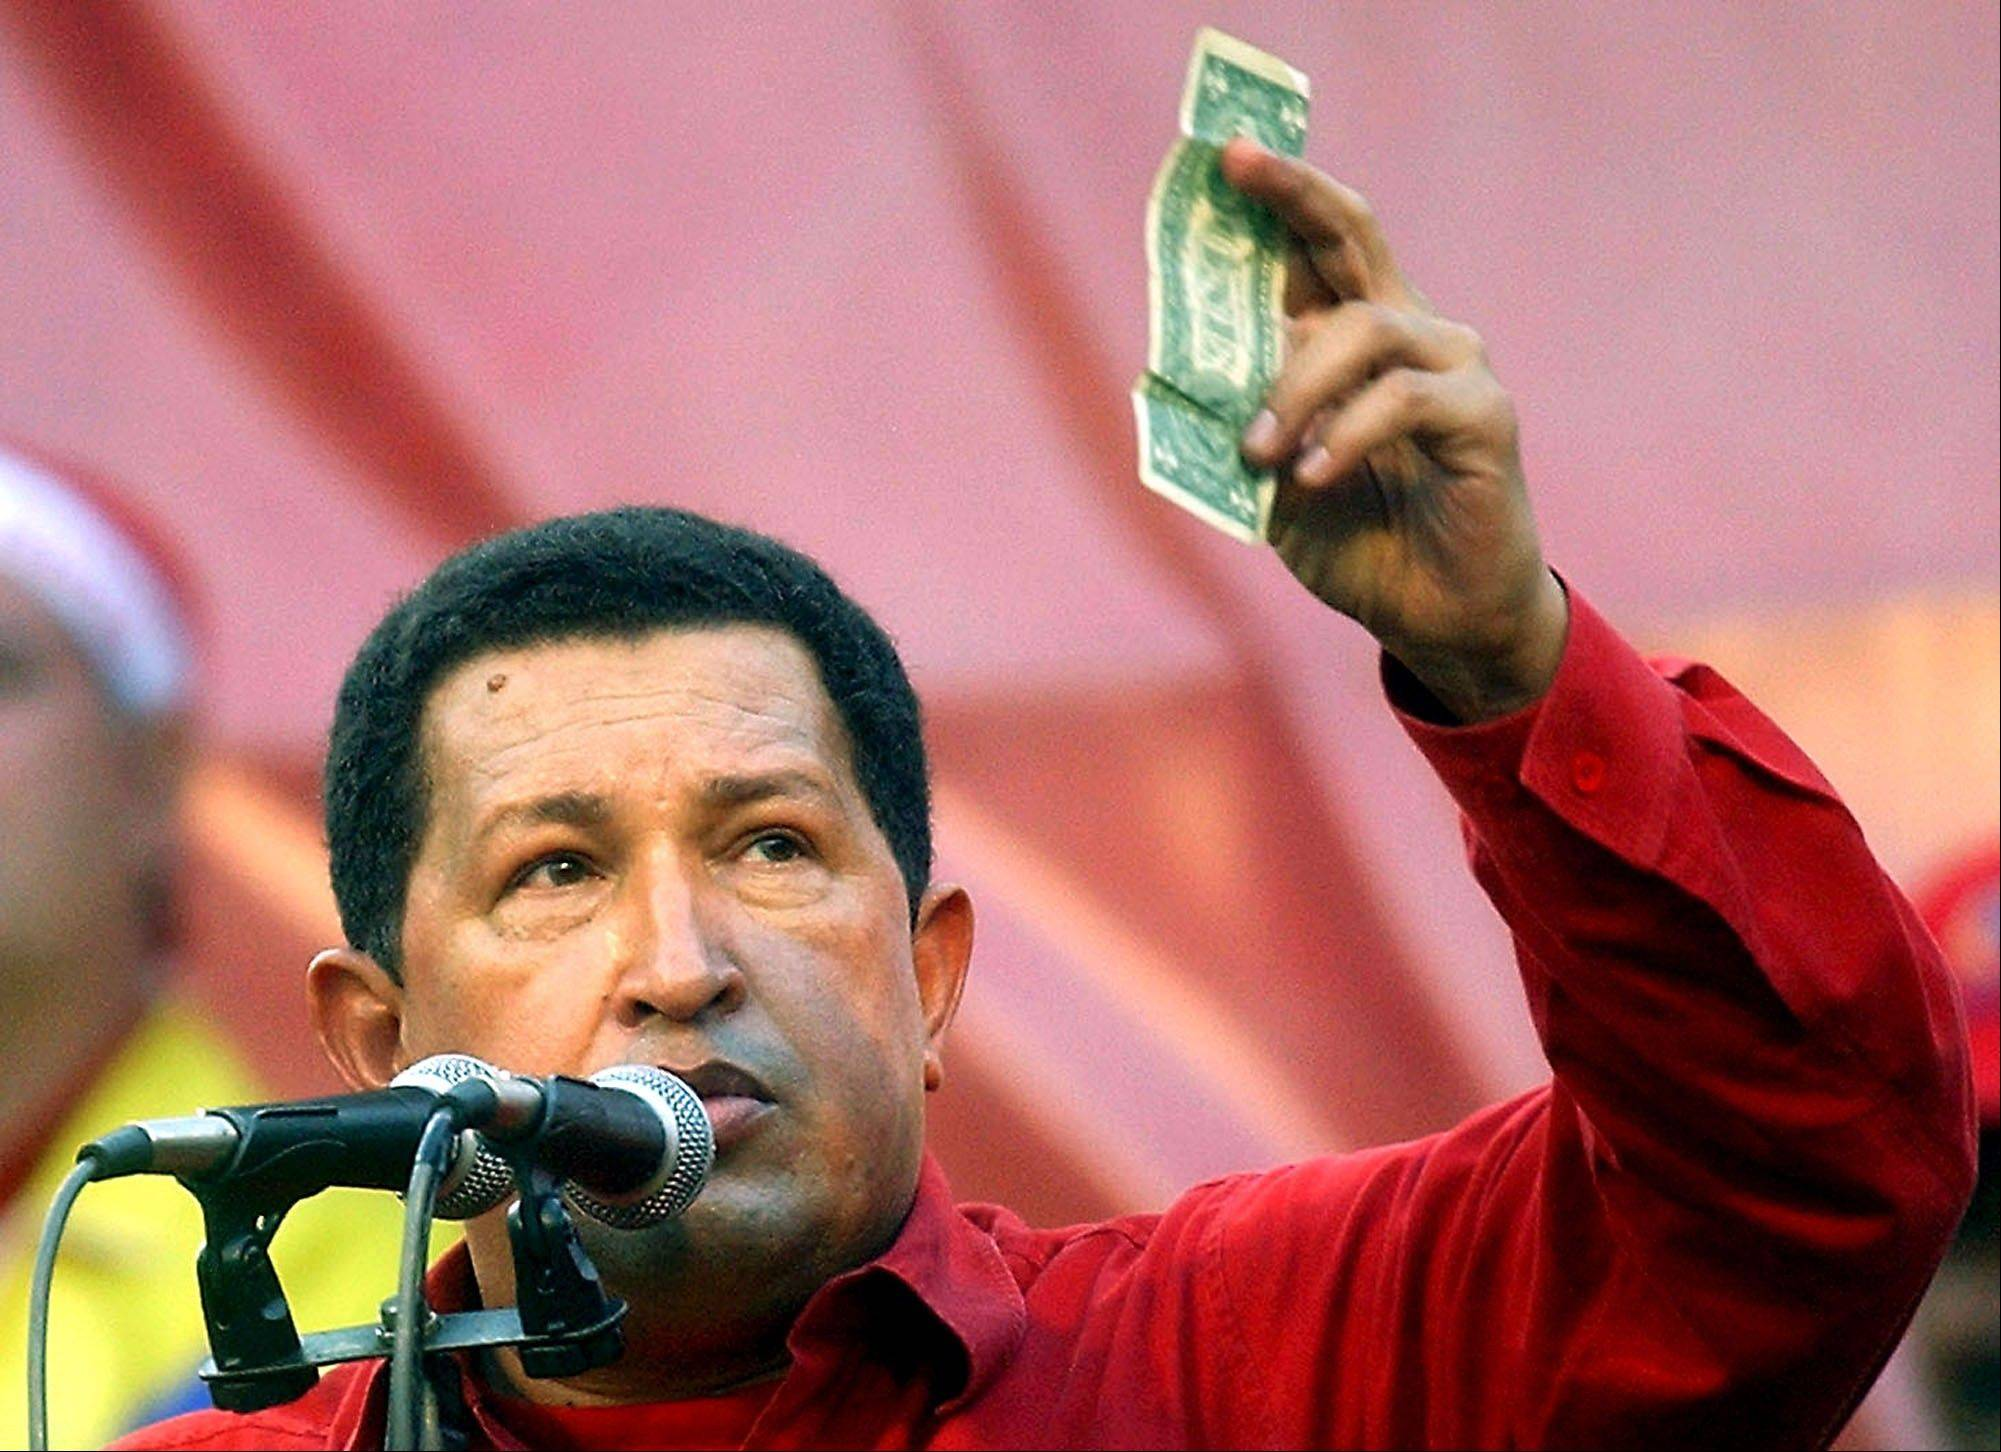 On Jan. 23, 2005, Venezuela�s President Hugo Chavez helds up a U.S. dollar bill and challenged U.S. President George W. Bush to bet which of them would remain in power longer at a rally in Caracas. Chavez died on Tuesday at age 58 after a nearly two-year bout with cancer.